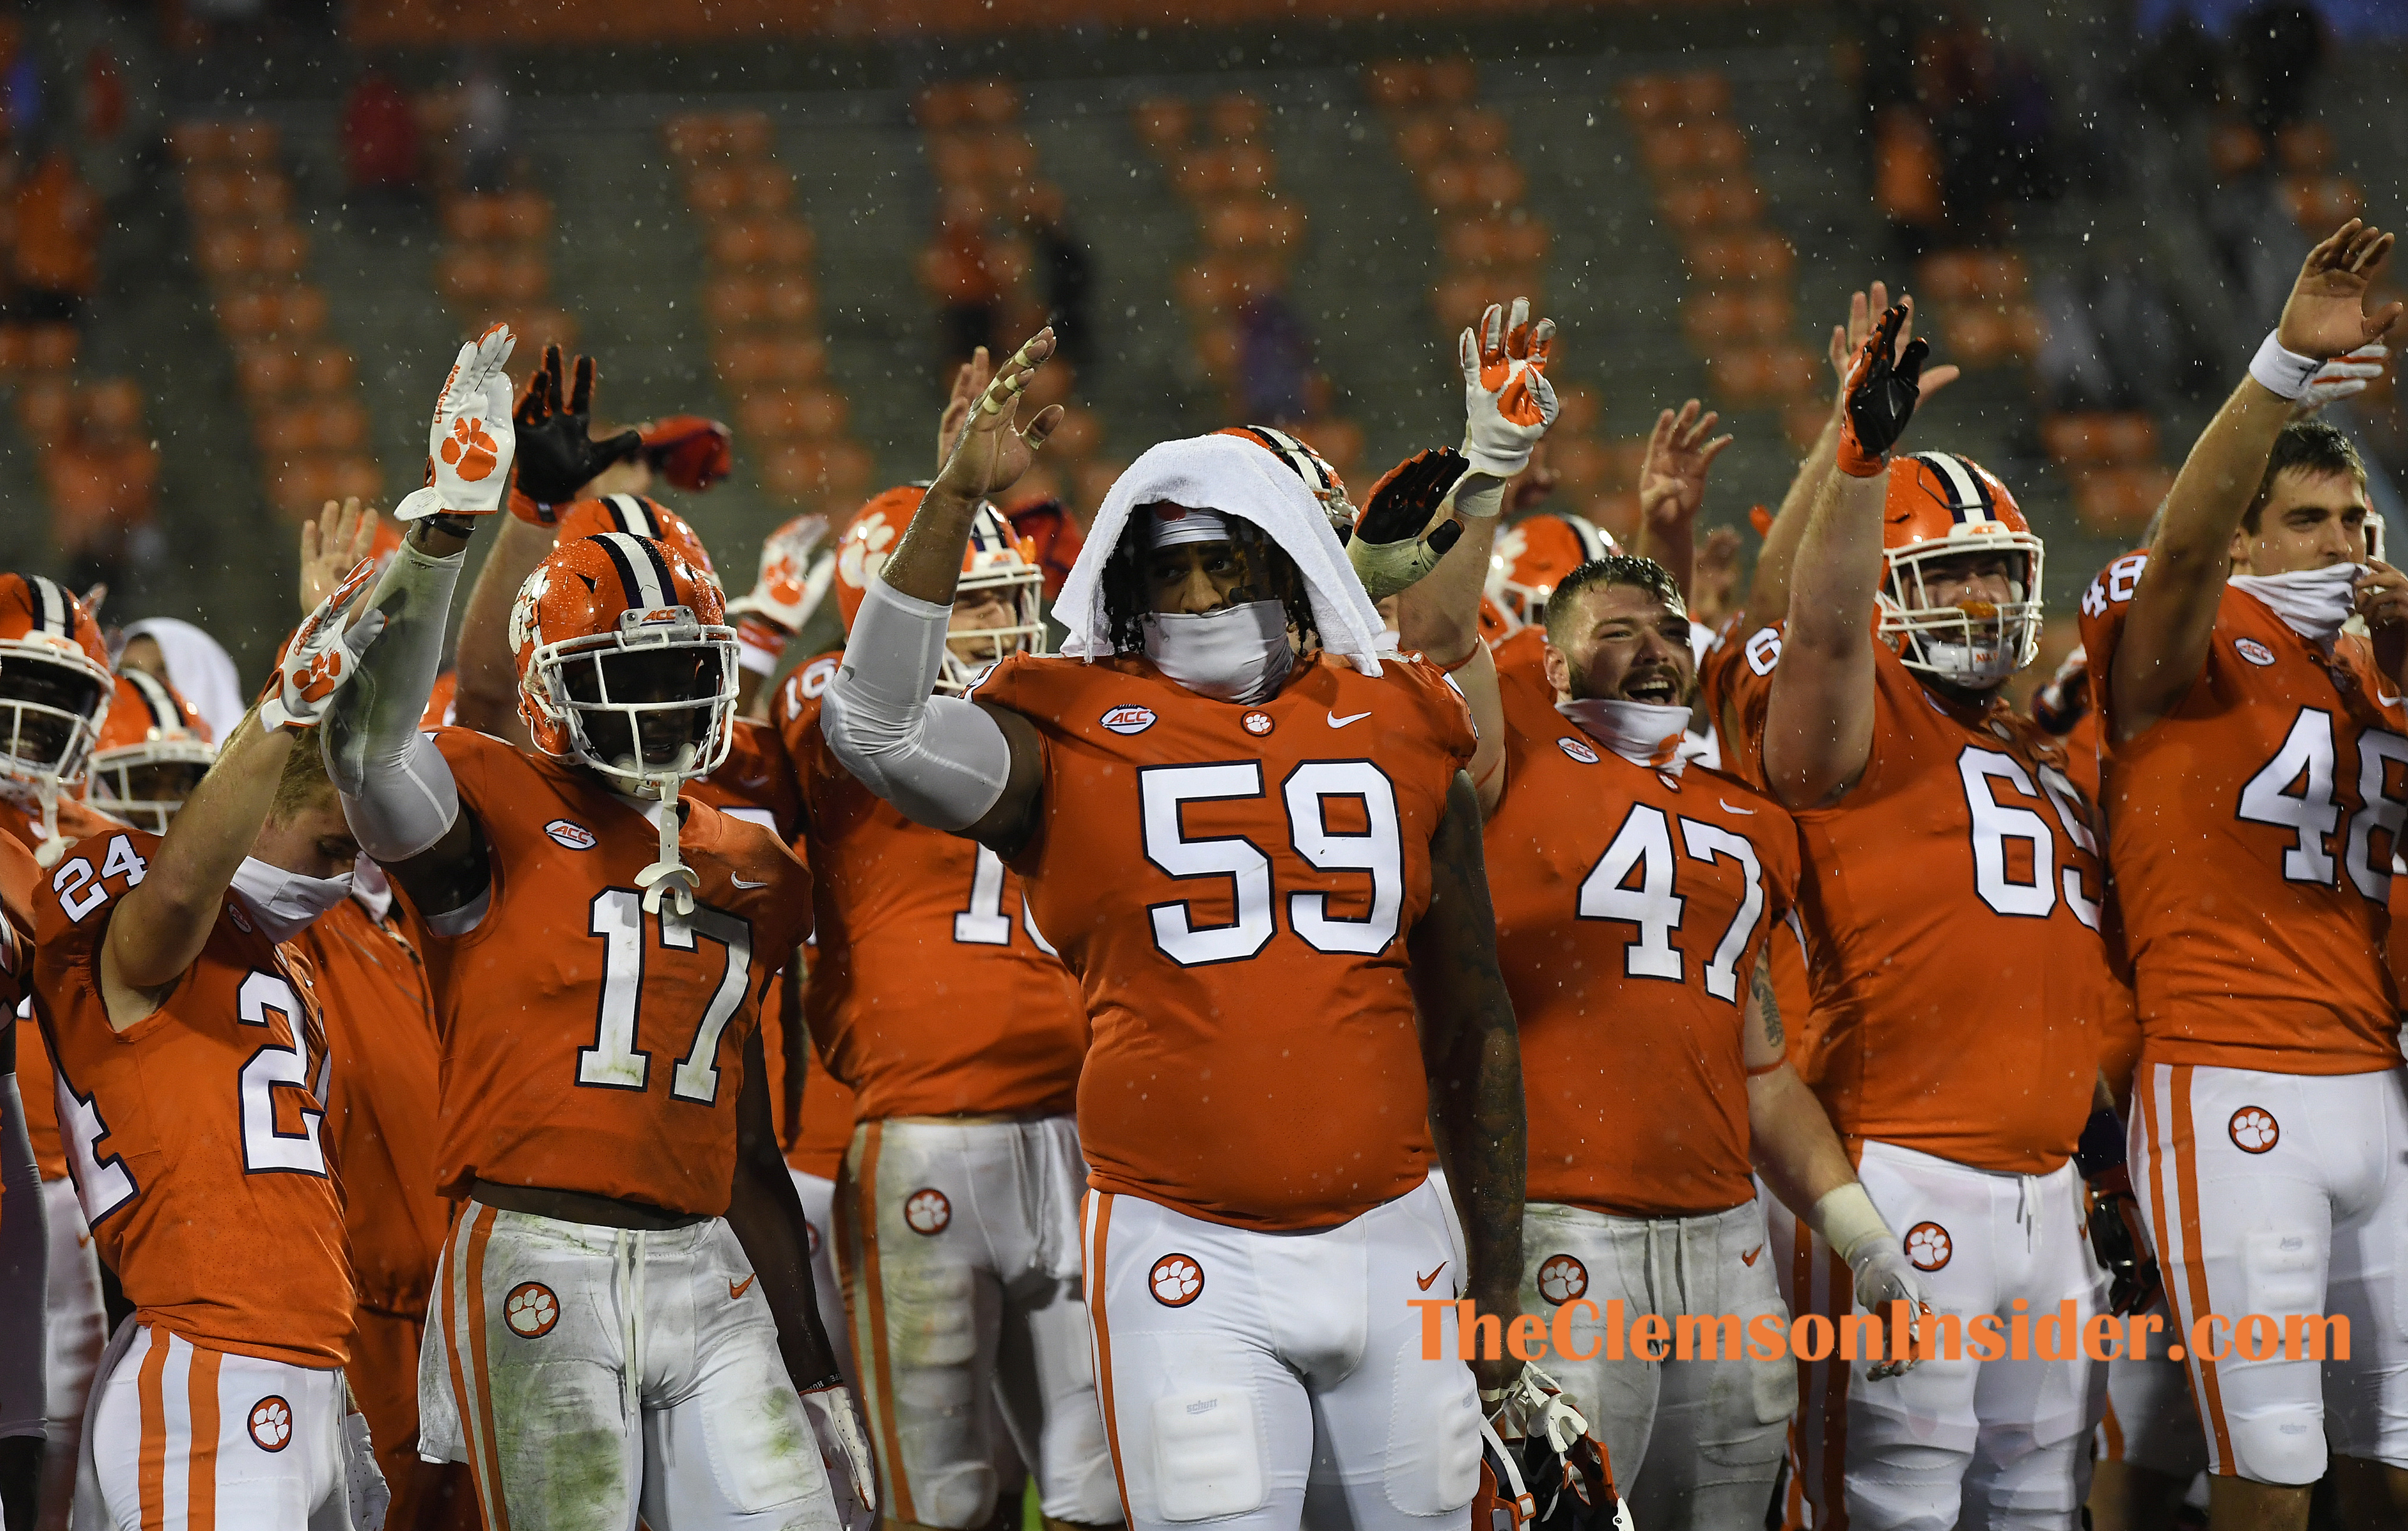 Clemson plays Miami during the 4th quarter of Clemson's game against the University of Miami at Clemson's Memorial Stadium Saturday, October 10, 2020. Bart Boatwright/The Clemson Insider